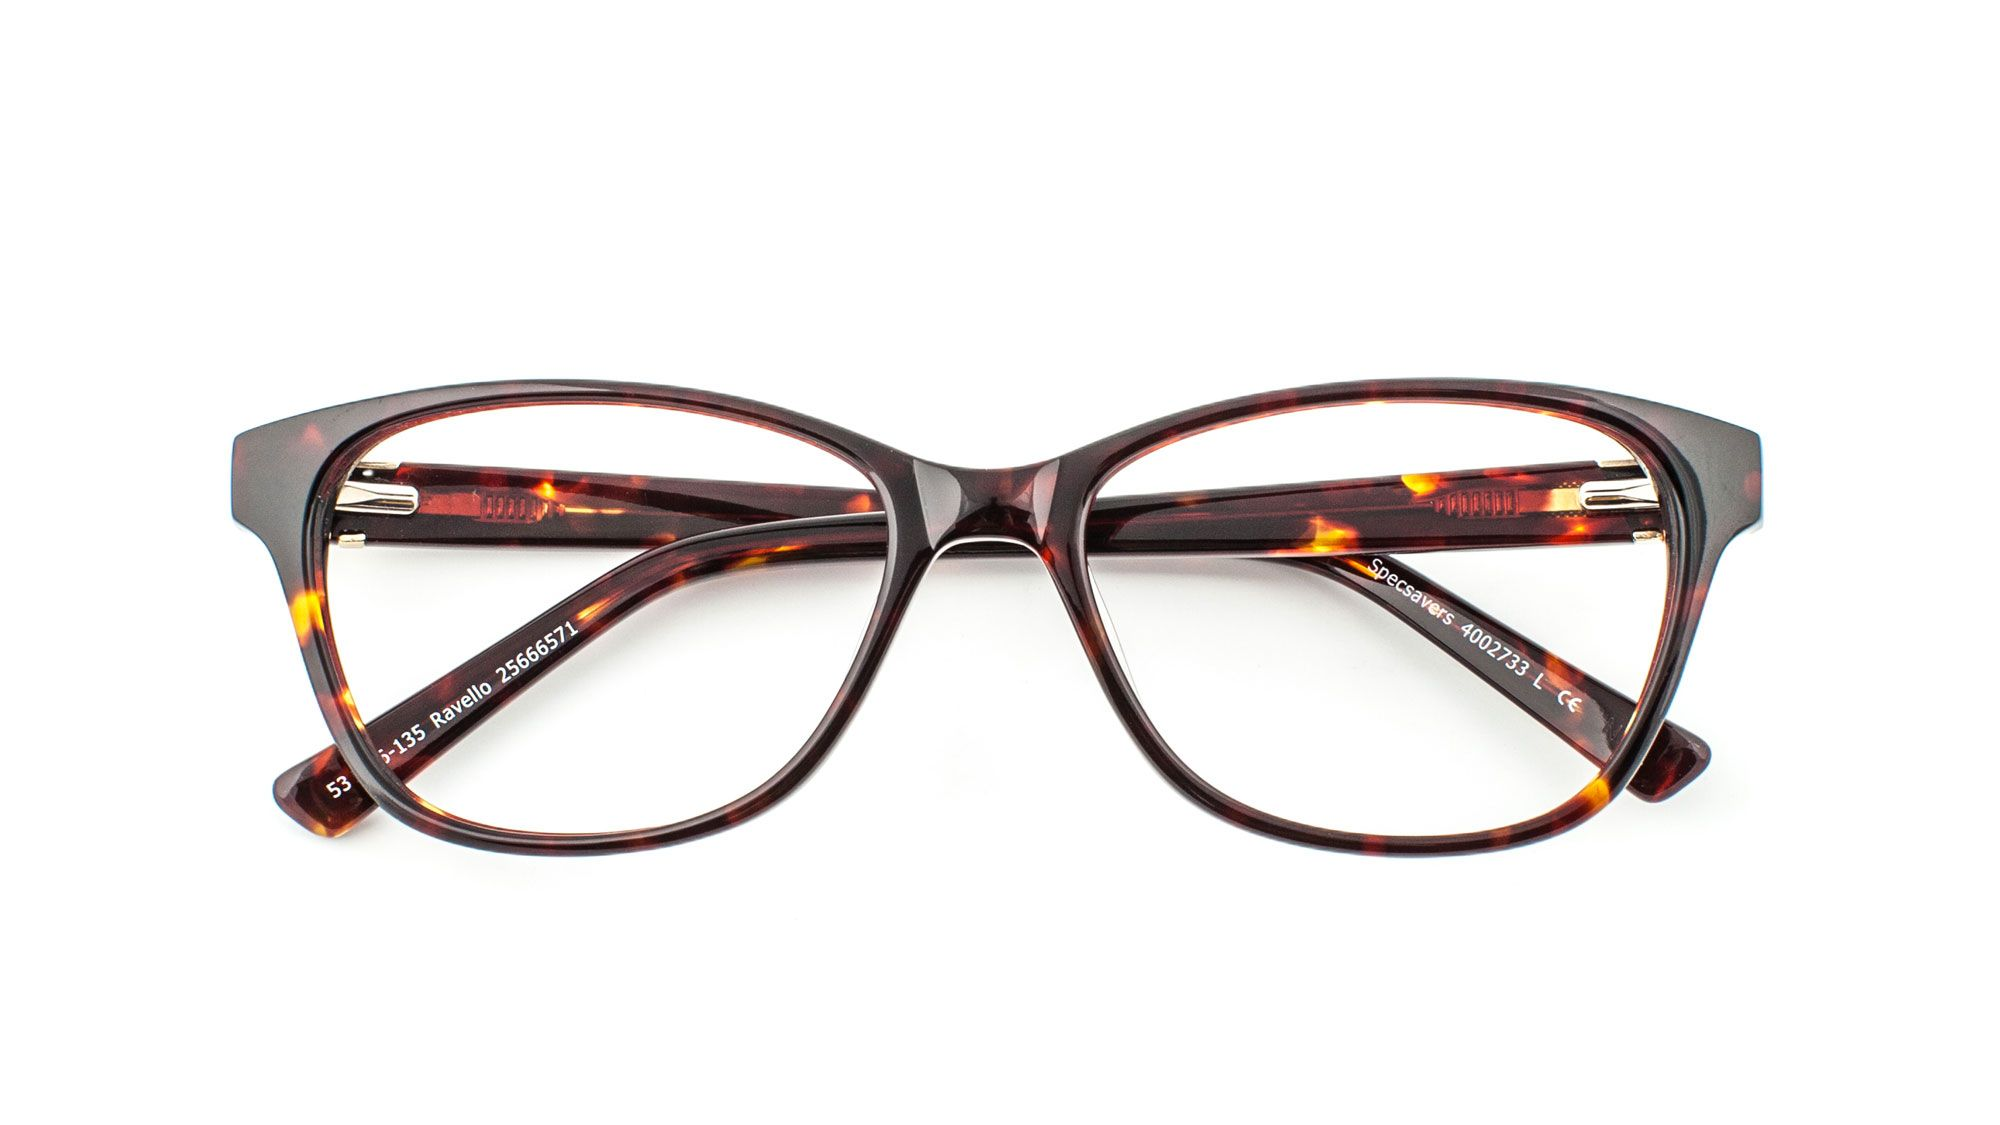 RAVELLO Glasses by Specsavers | Specsavers UK | Spec savers | Pinterest